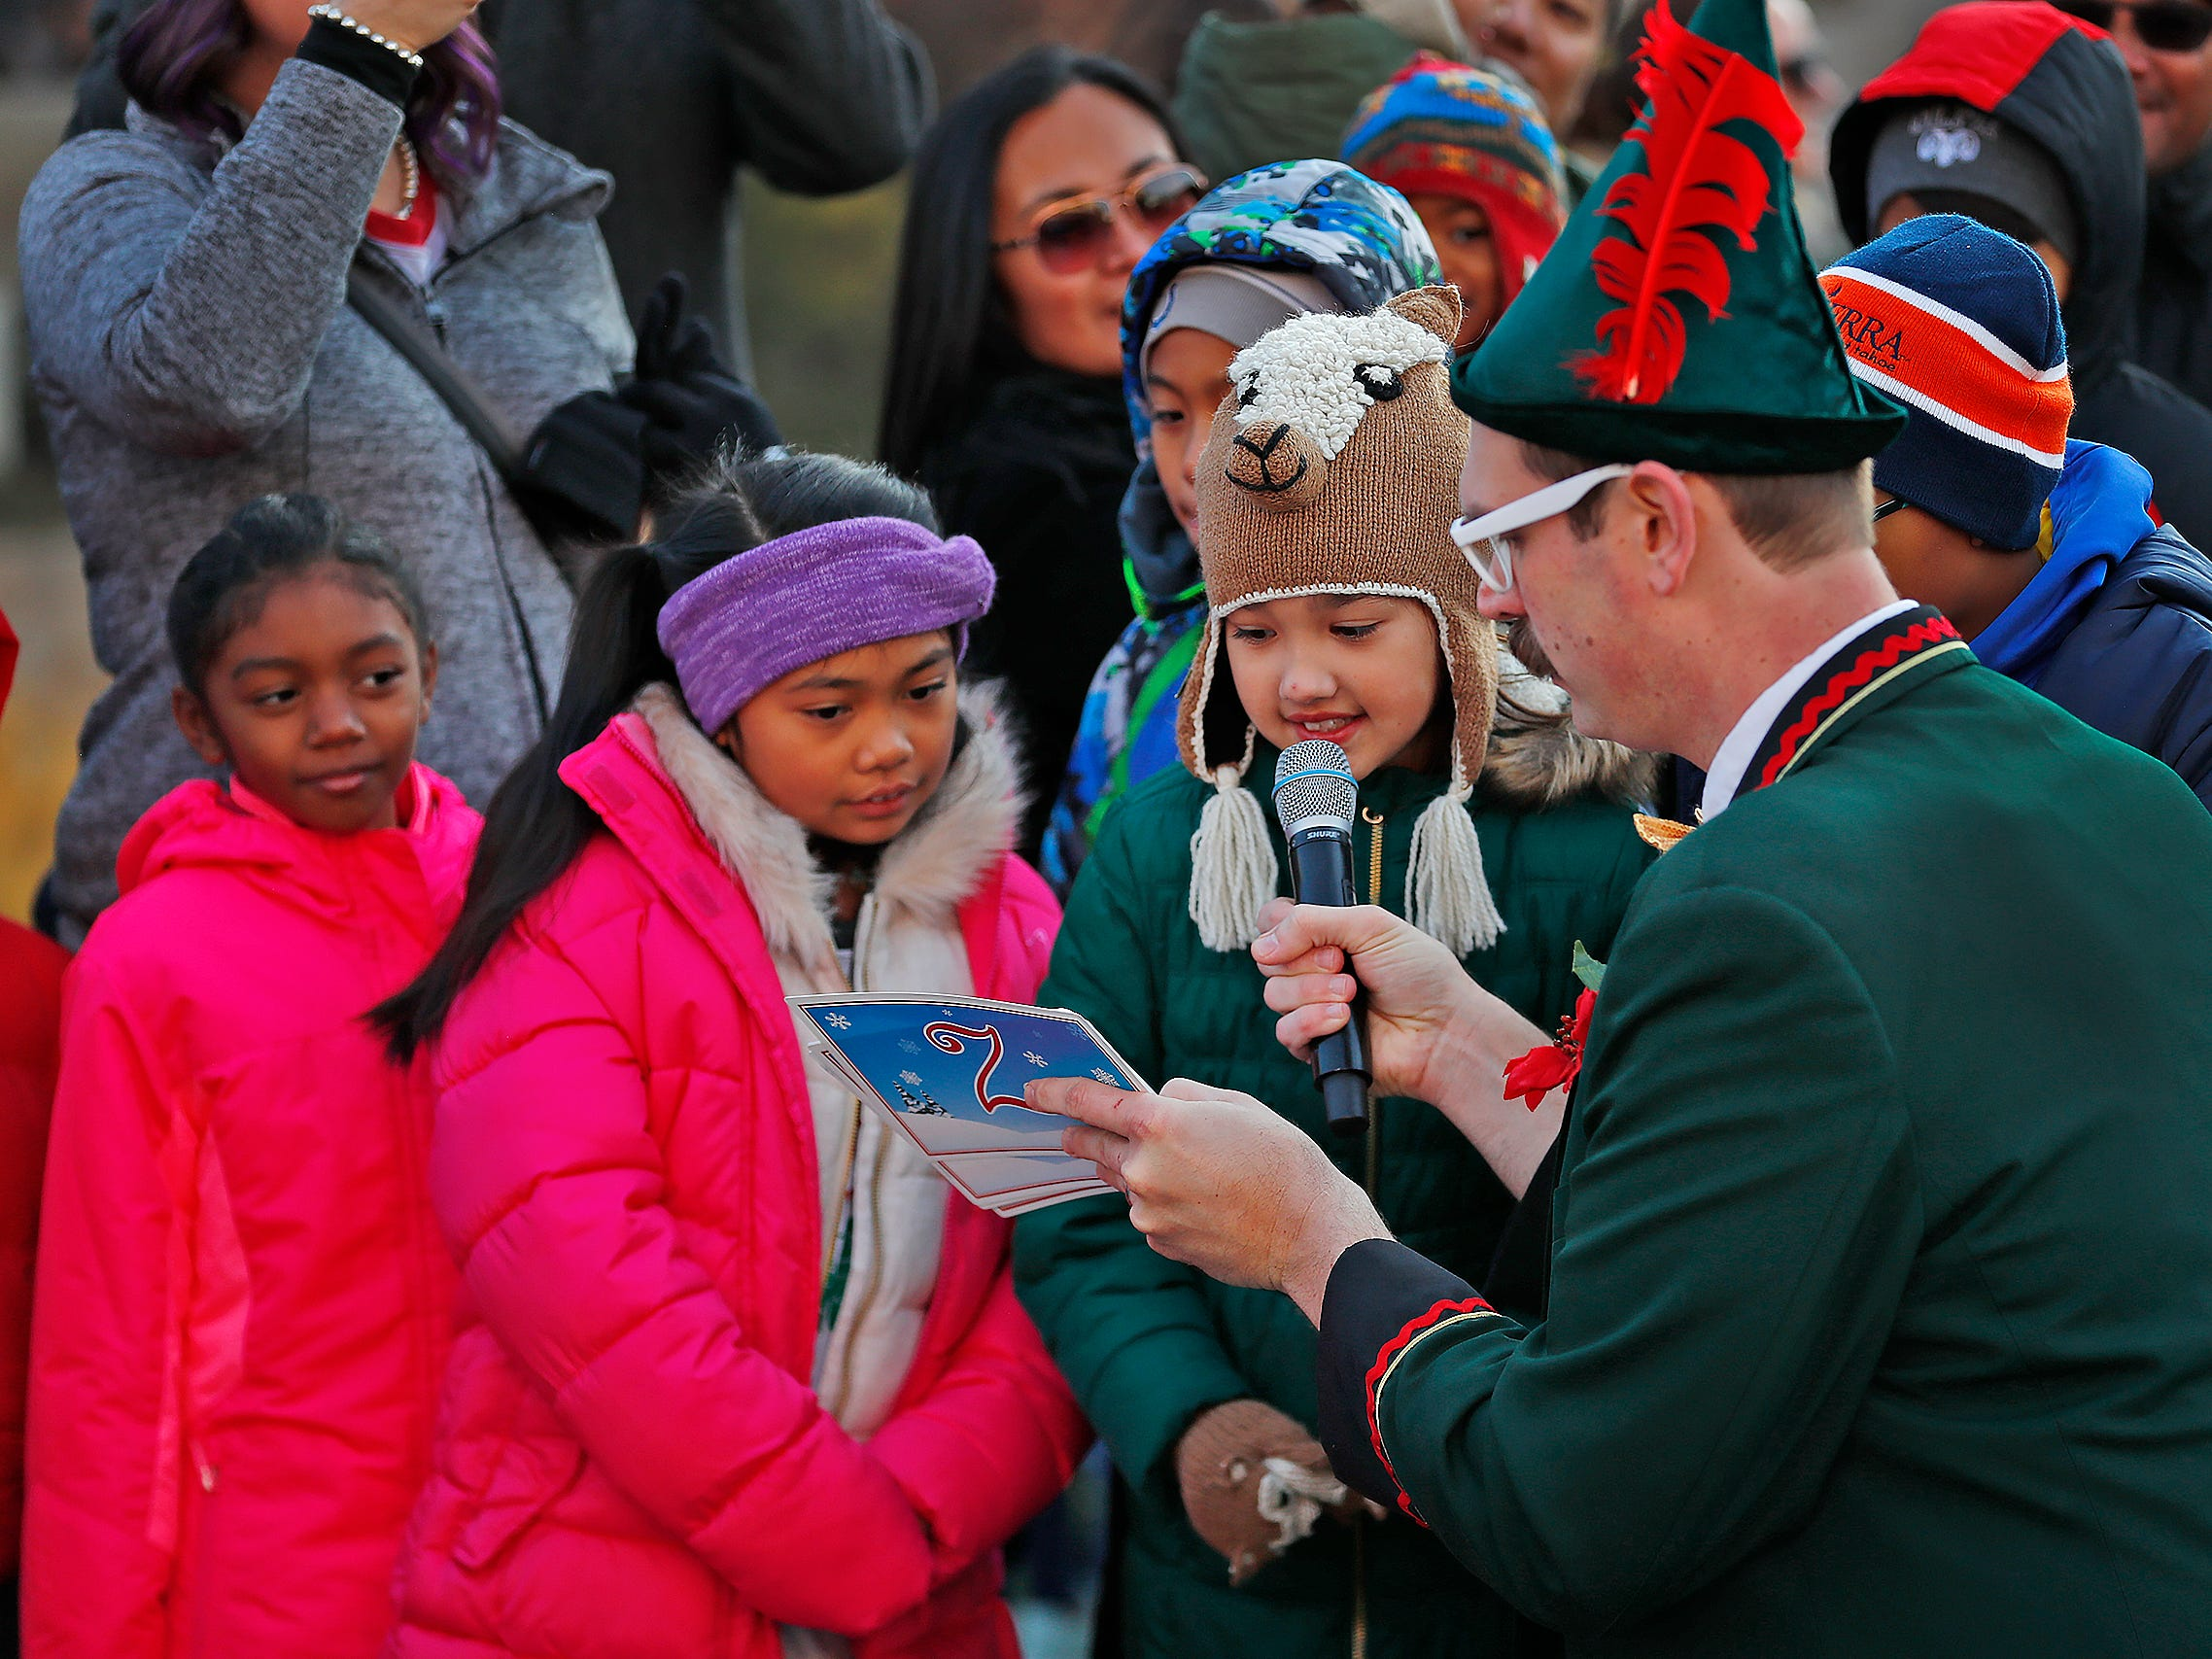 Zazzelz, the Elf, right, aka Michael Hosp, gets help from kids as they tell jokes while awaiting Santa's arrival at the Children's Museum of Indianapolis in an IndyCar driven by racer Ed Carpenter, Friday, Nov. 23, 2018.